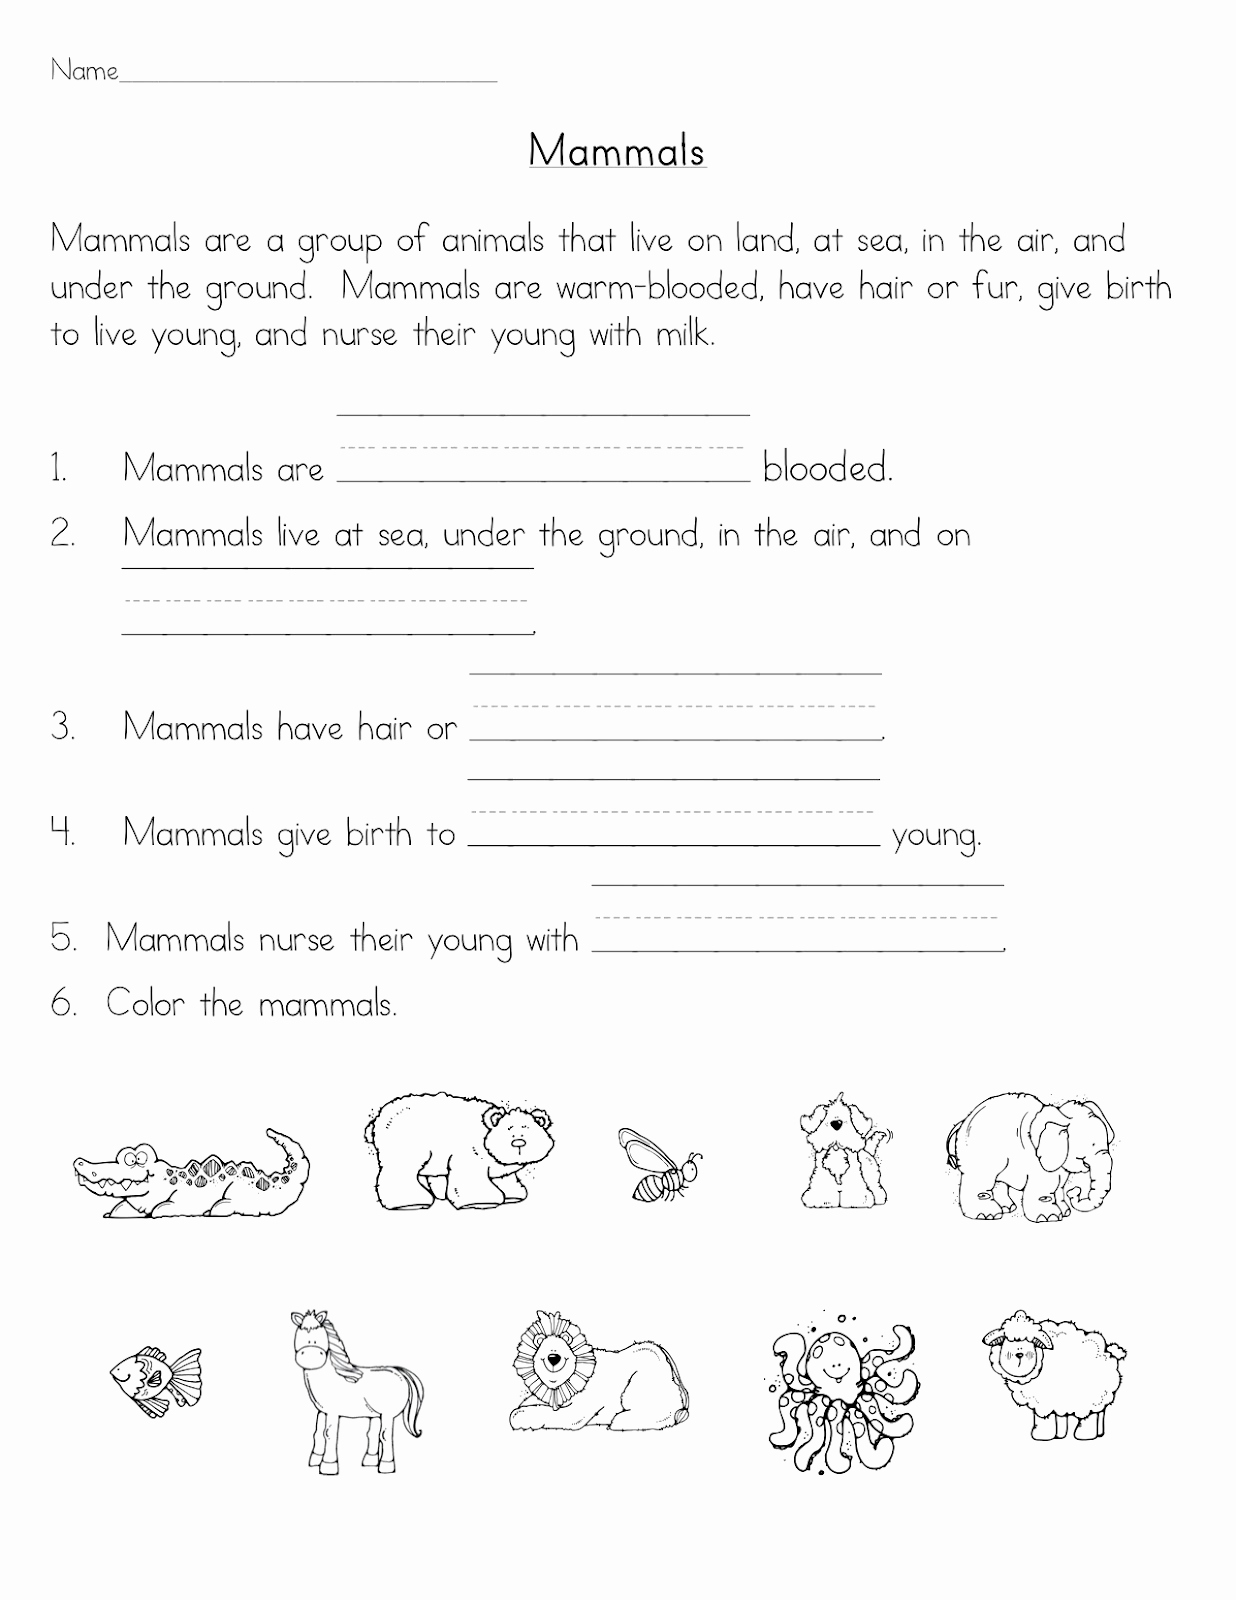 Mammals Worksheets for 2nd Grade Awesome Mammals Classroom Freebies